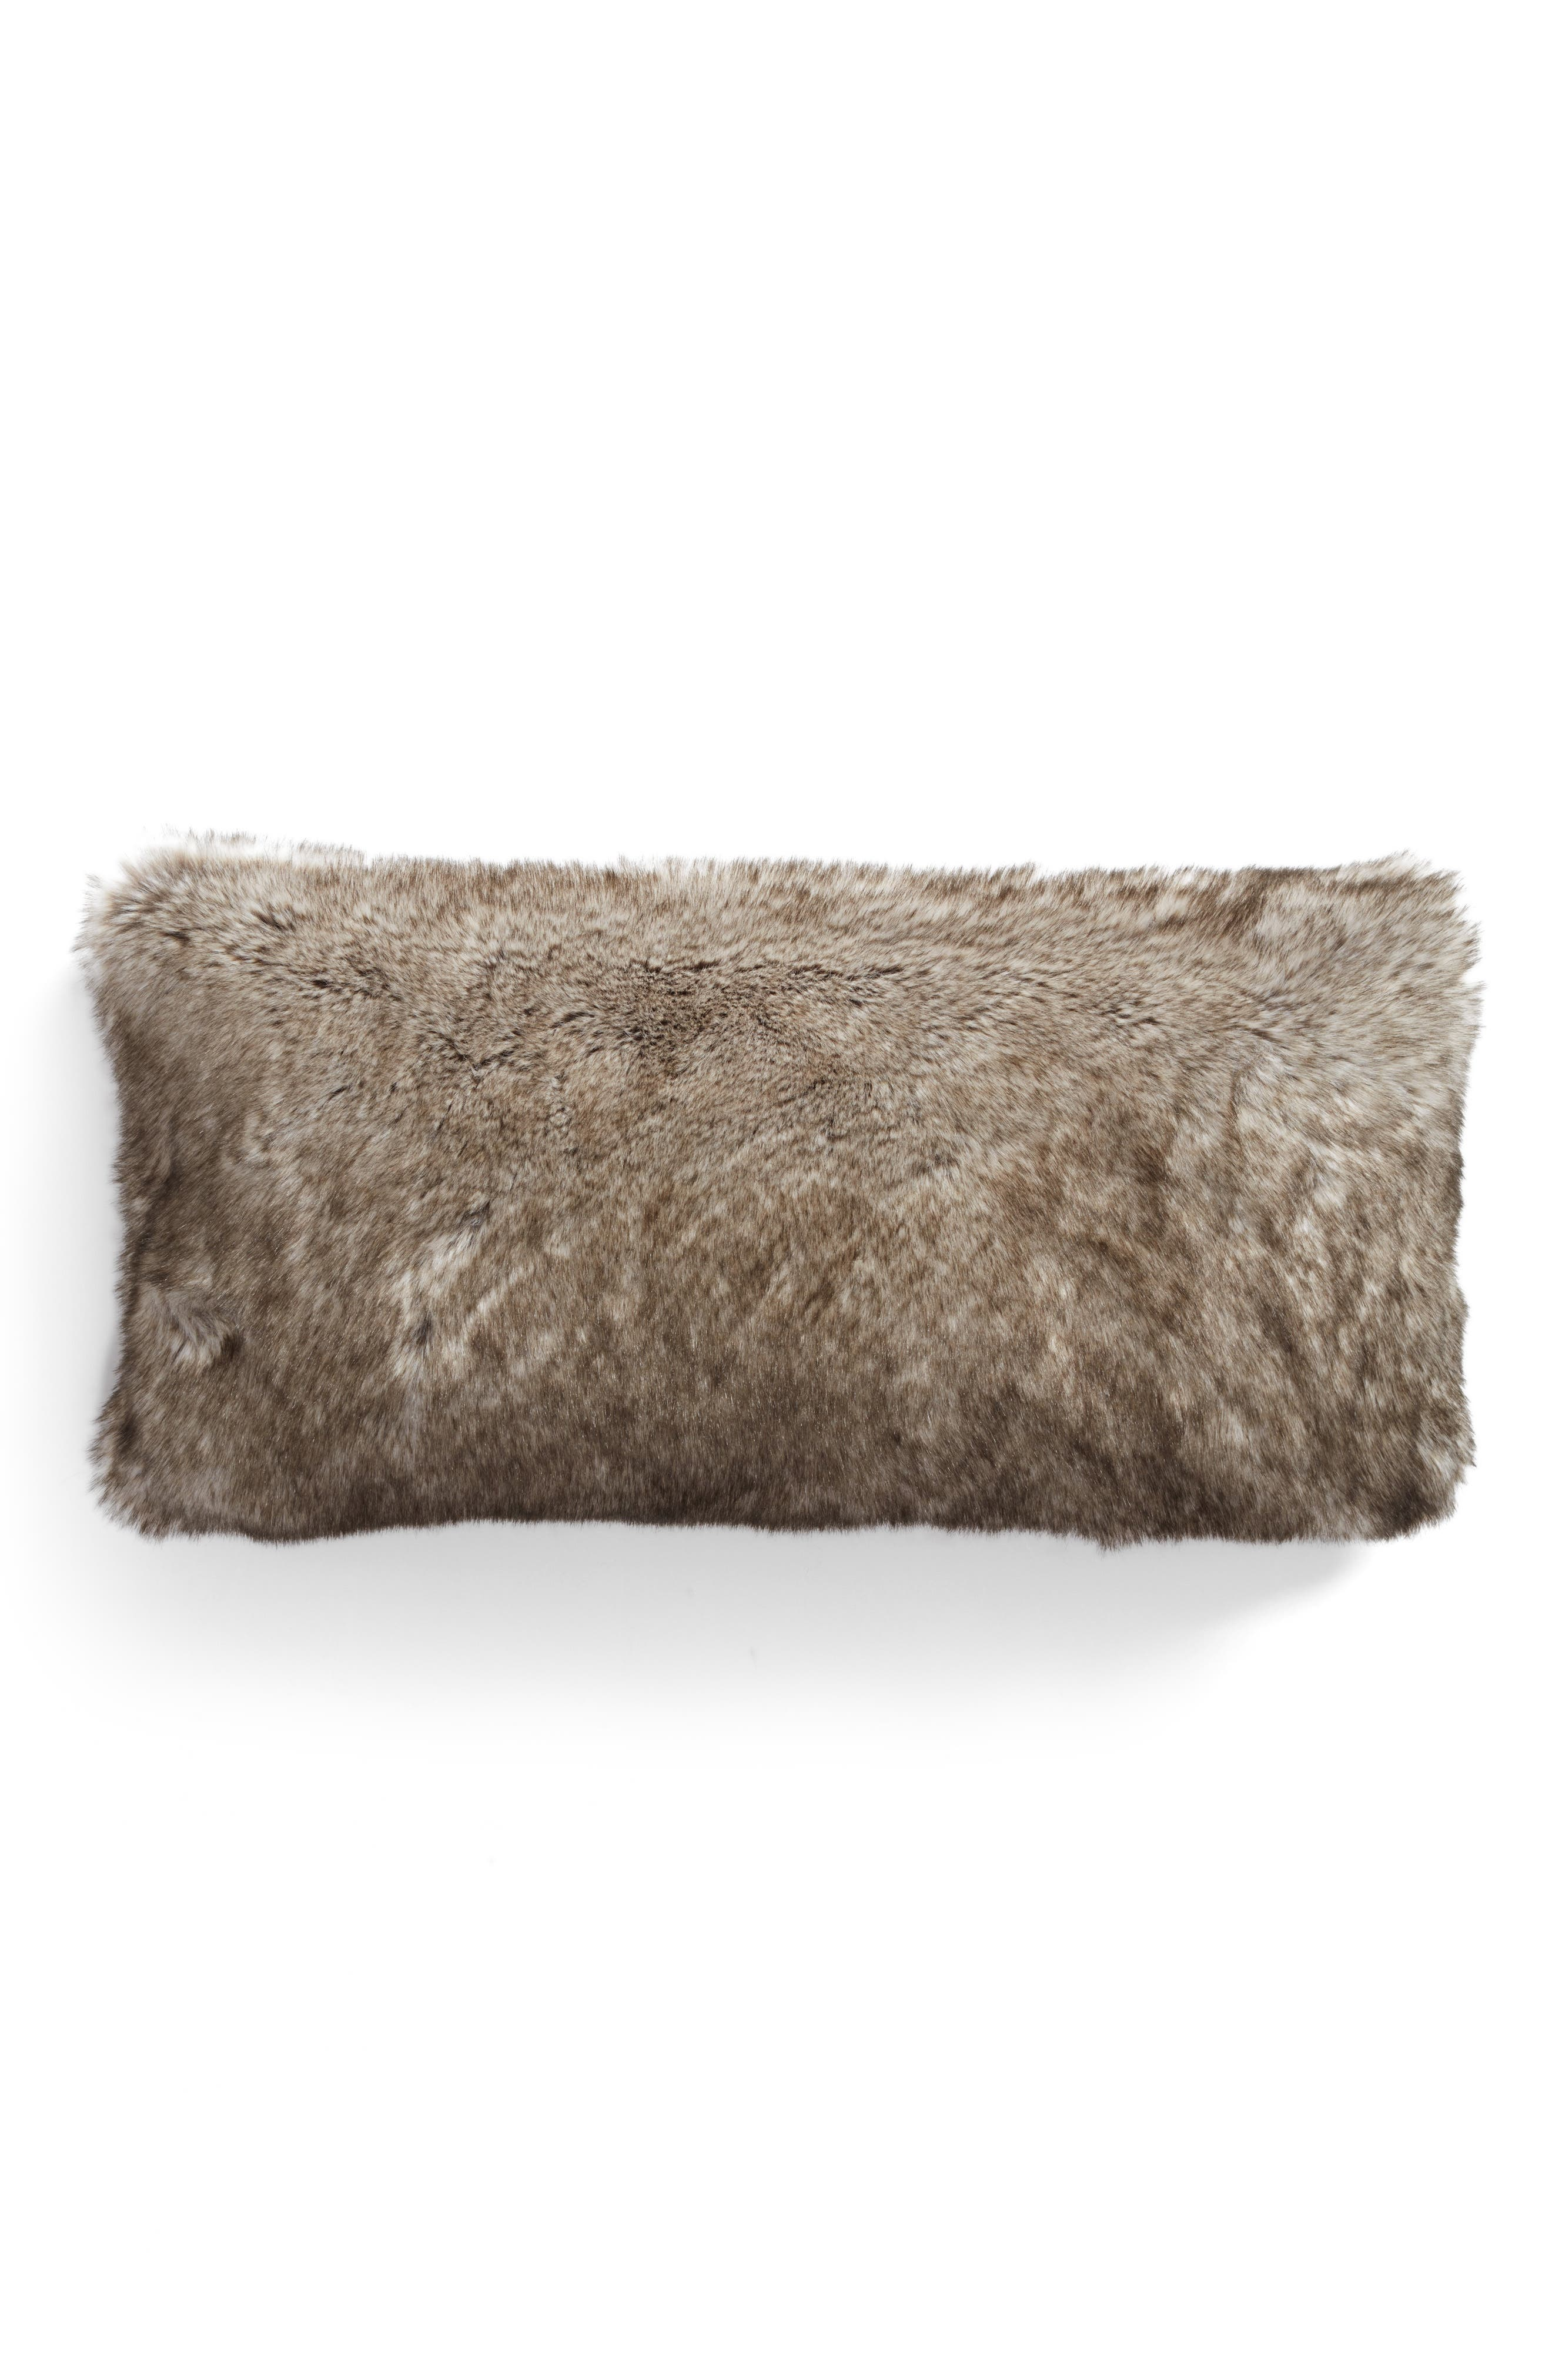 Main Image - Nordstrom at Home Cuddle Up Faux Fur Accent Pillow